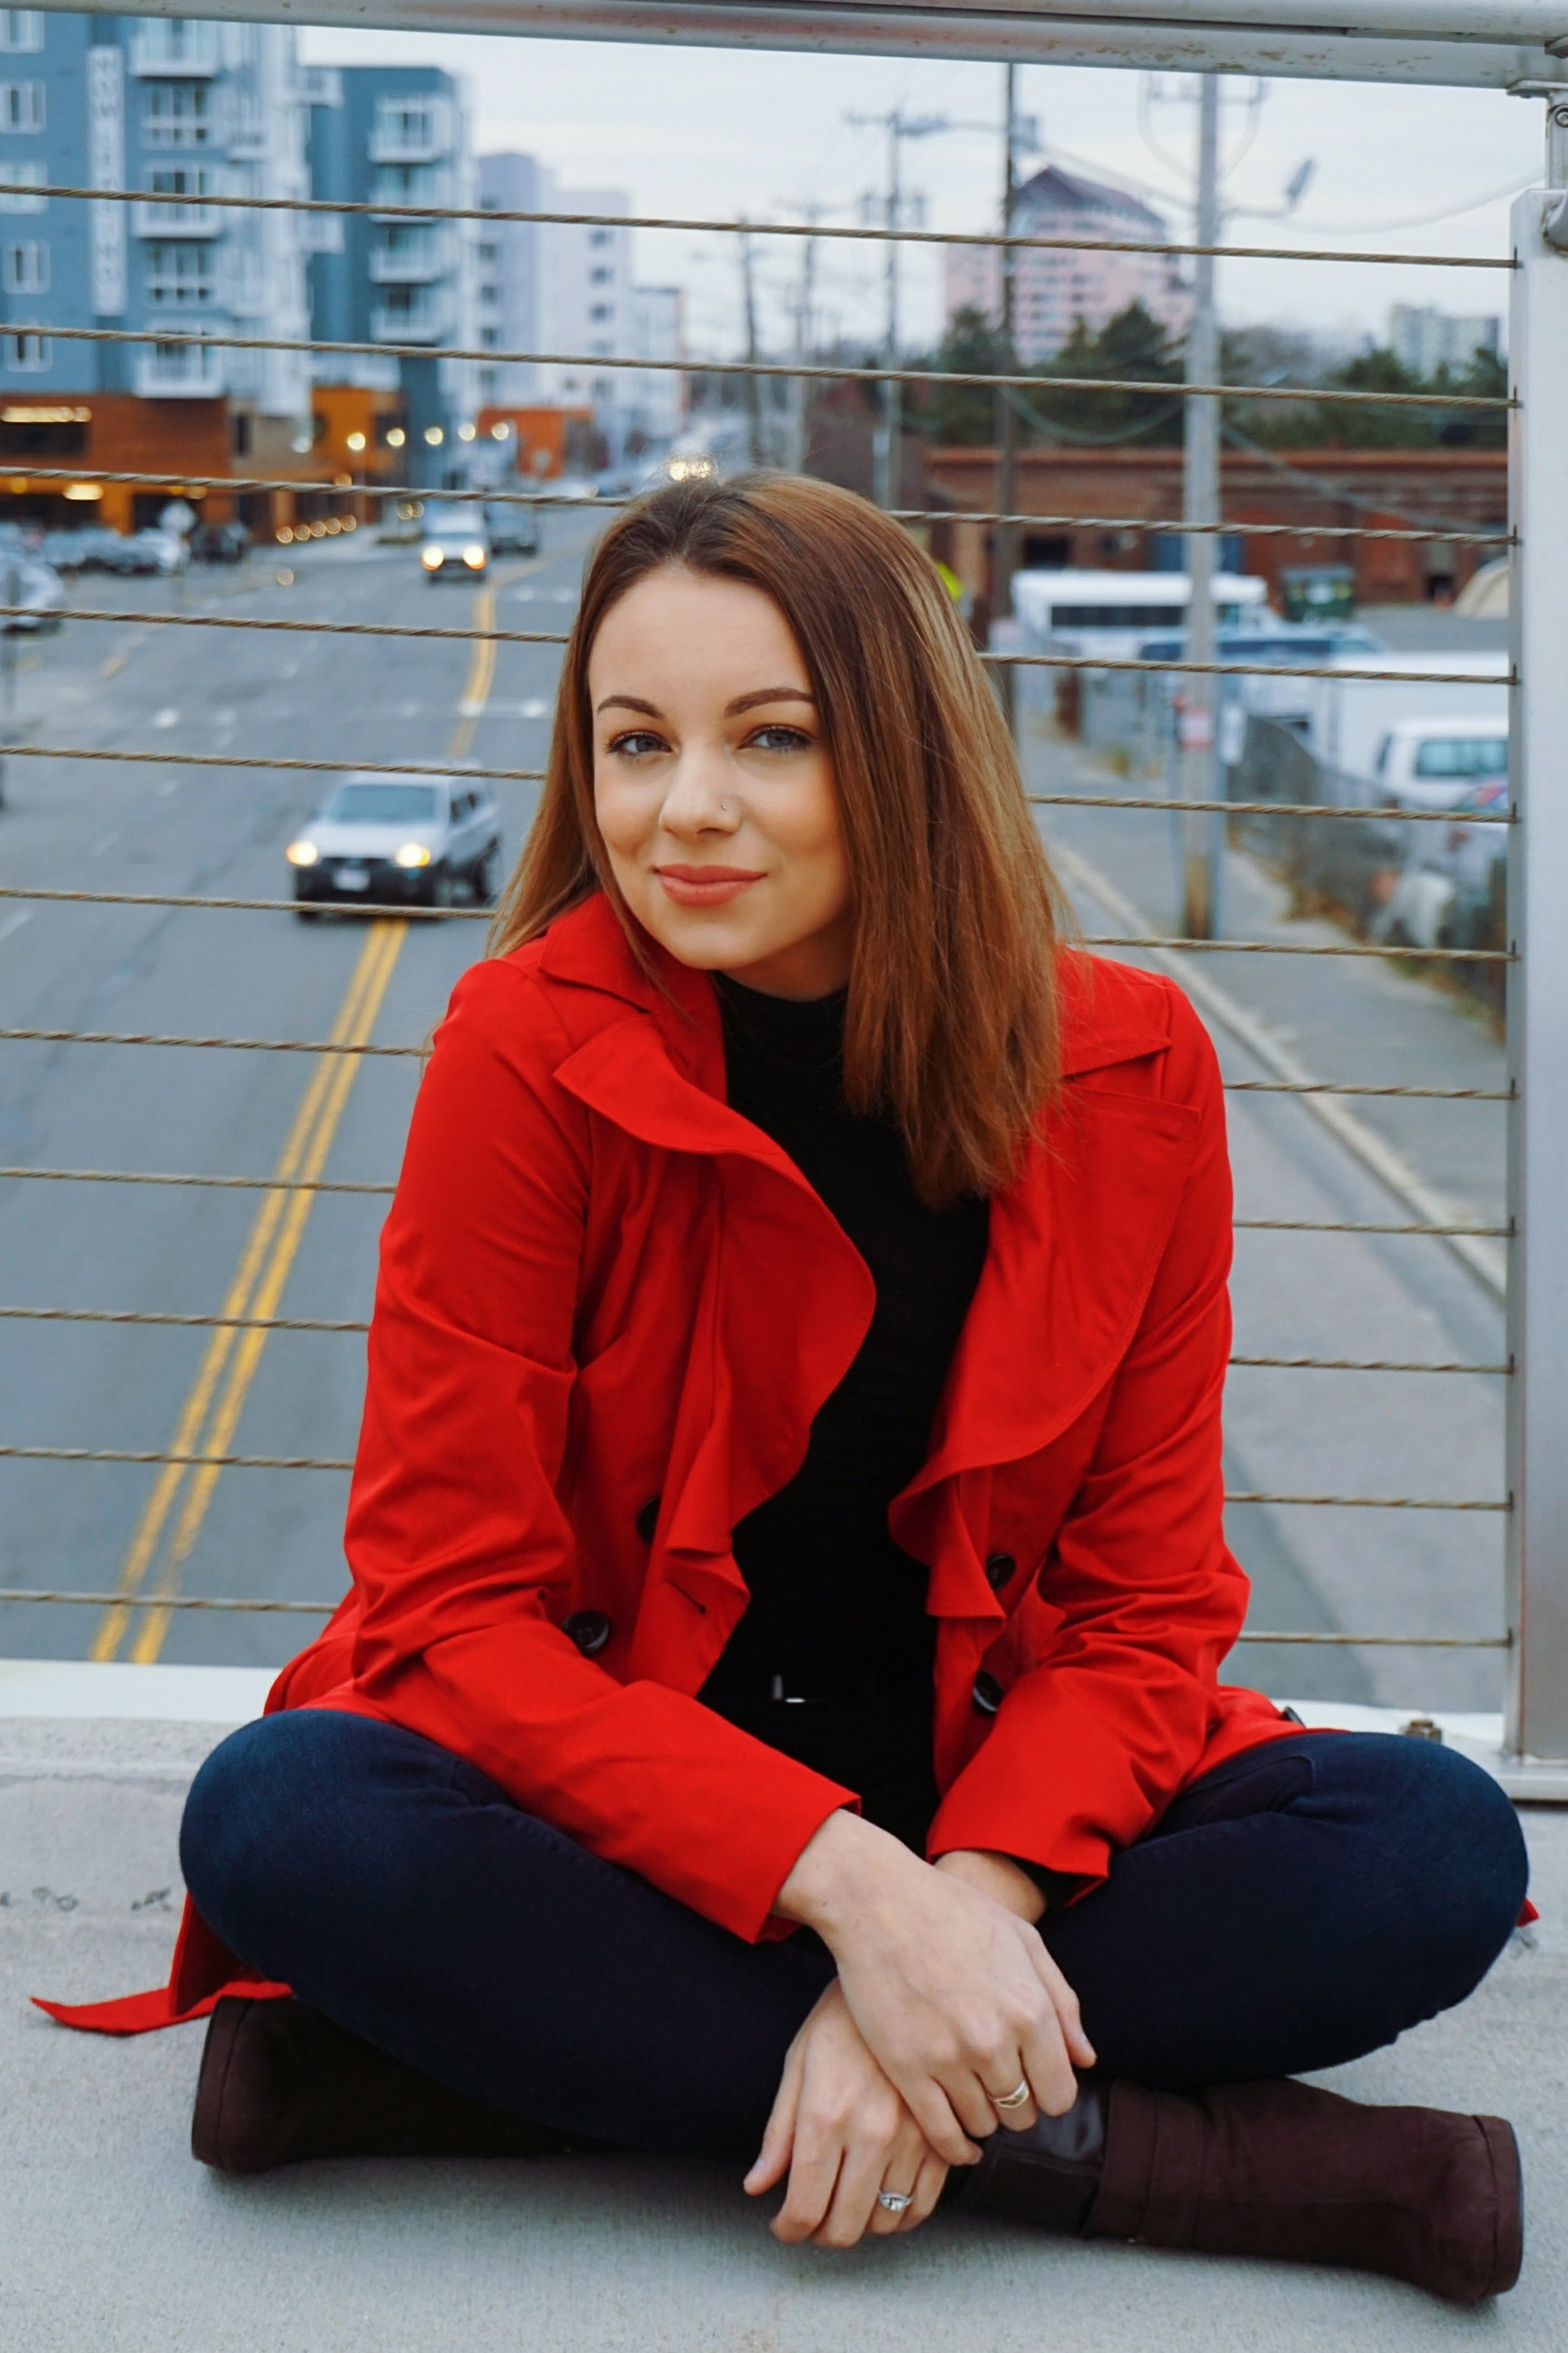 Blogger sitting on the bridge with cars driving in the background, wearing a spring outfit with red coat.